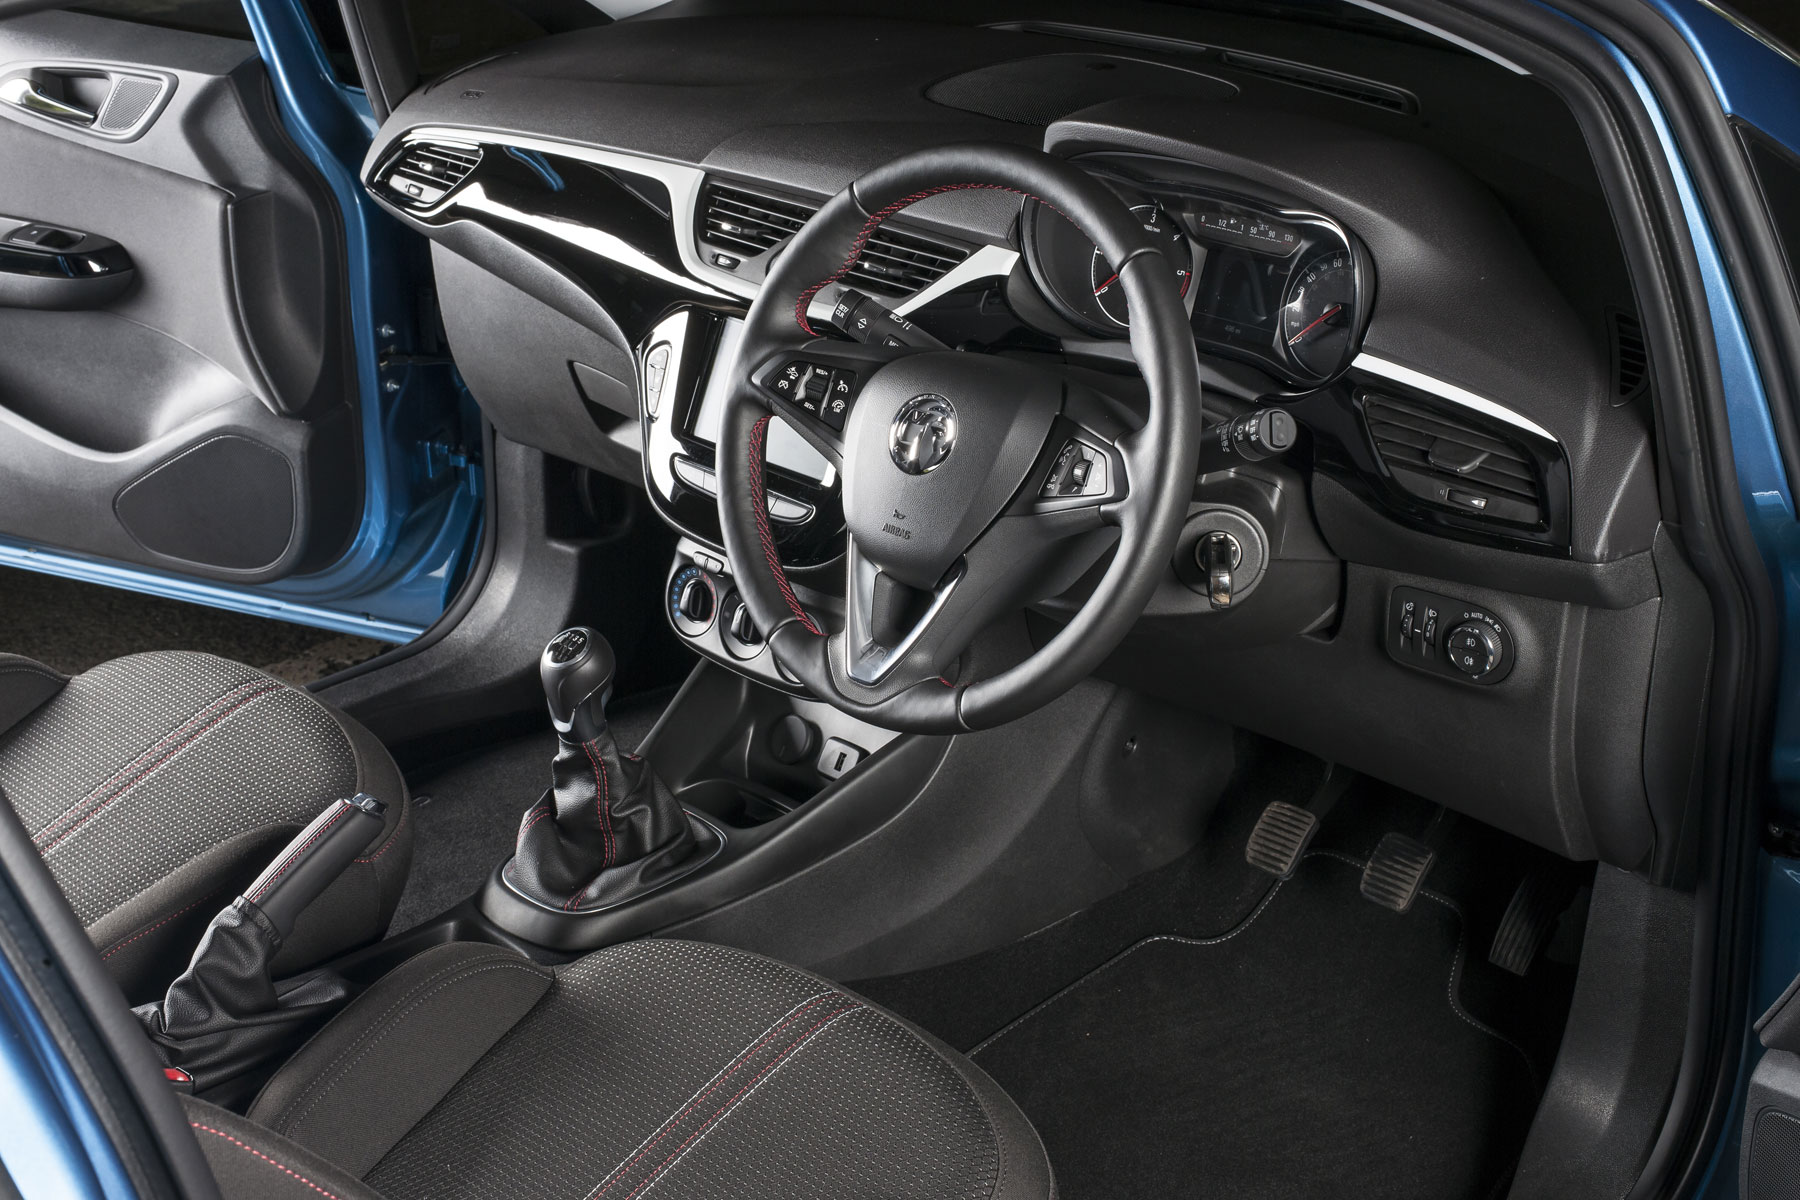 Vauxhall Corsavan Limited Edition Nav review - steering wheel and red stitching